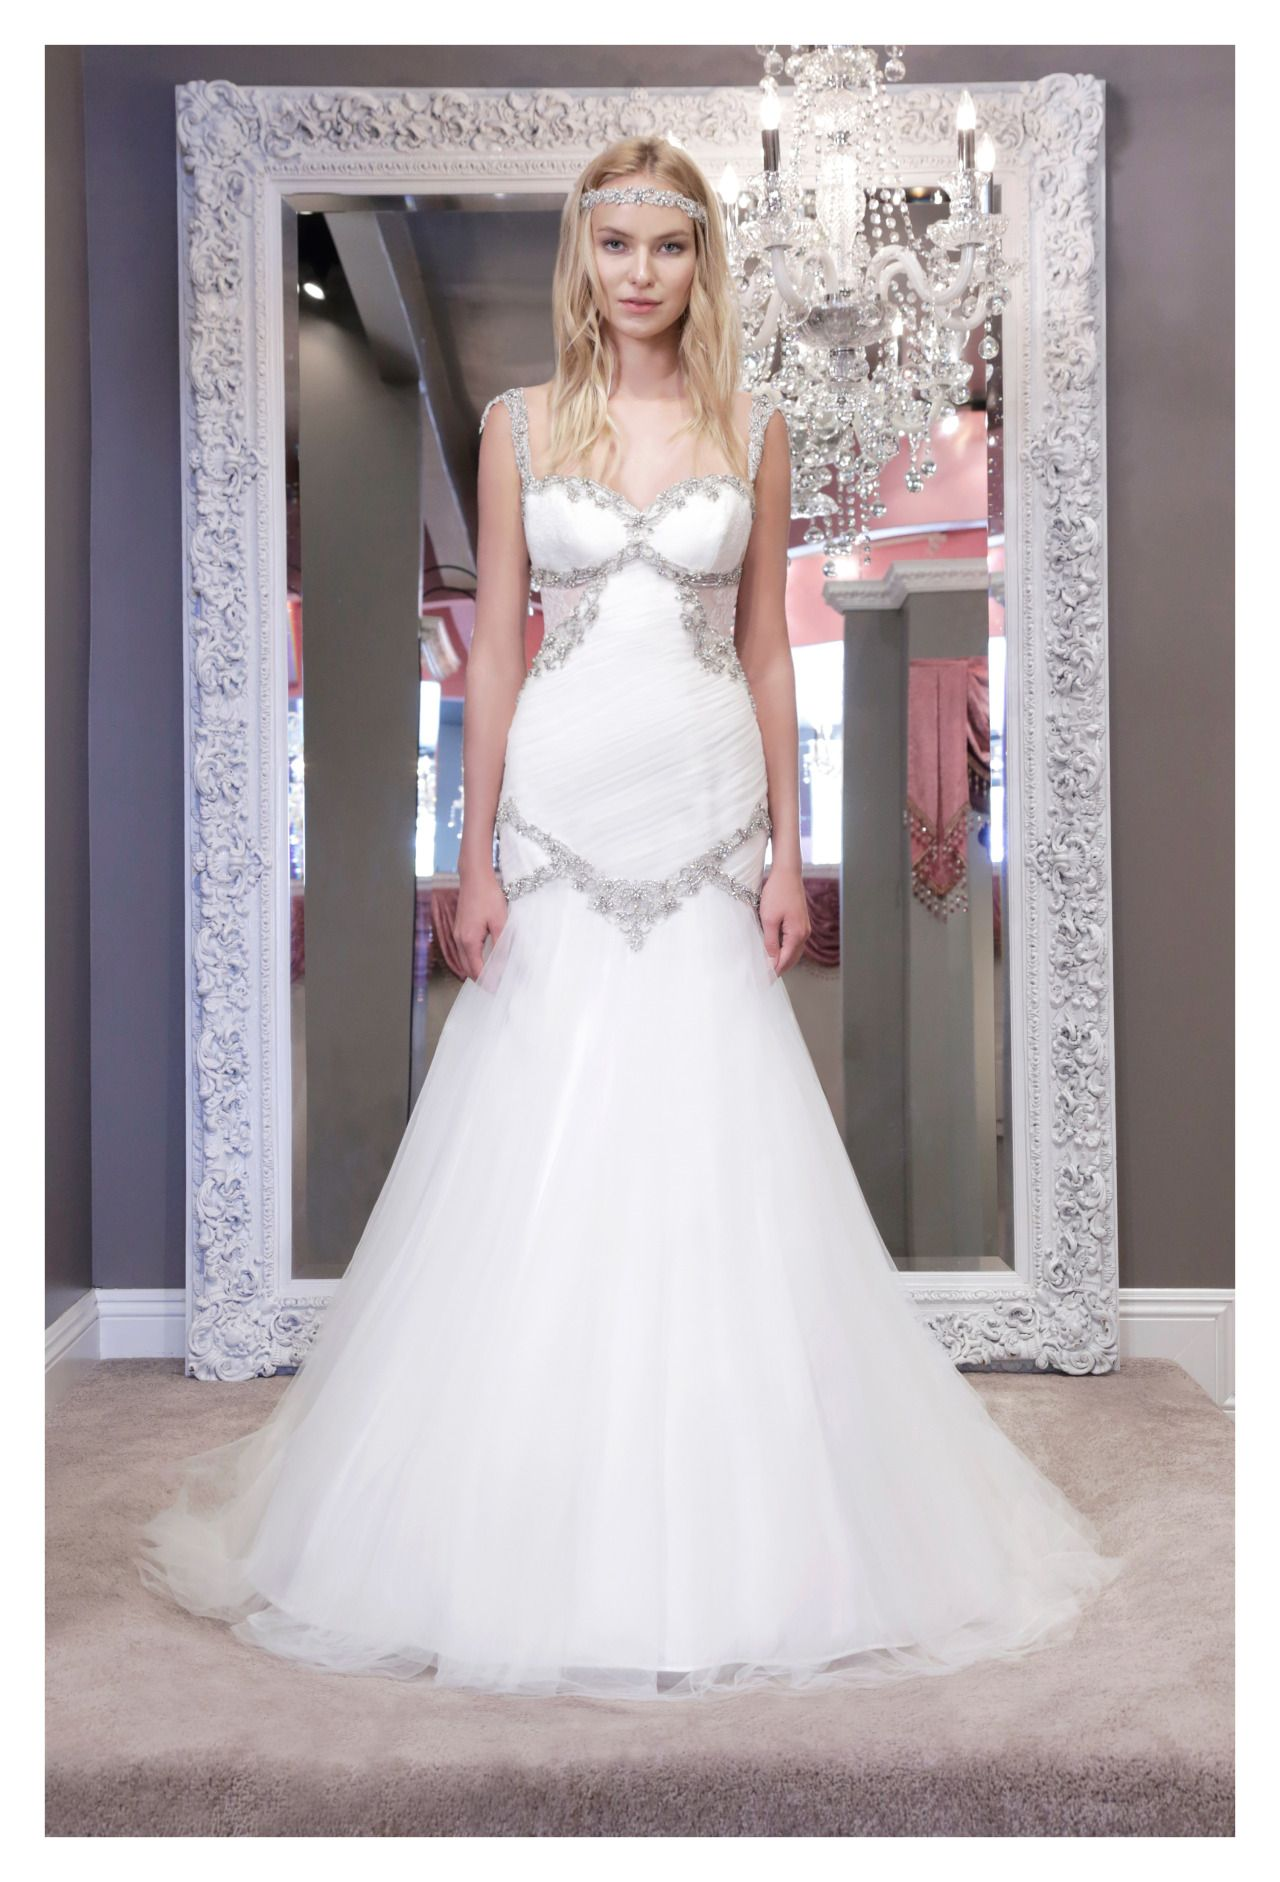 The Winnie Couture Wedding Dresses 2016 Collection Are All About Red Carpet Style Sparkle With Sophisticated Glamour And Timeless Elegance